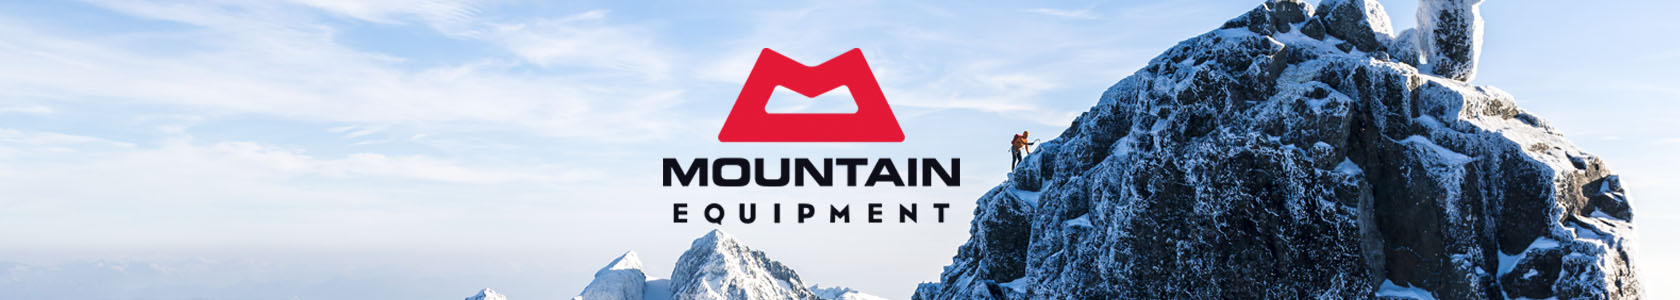 Person is walking up a snow mountain wearing Mountain Equipment gear